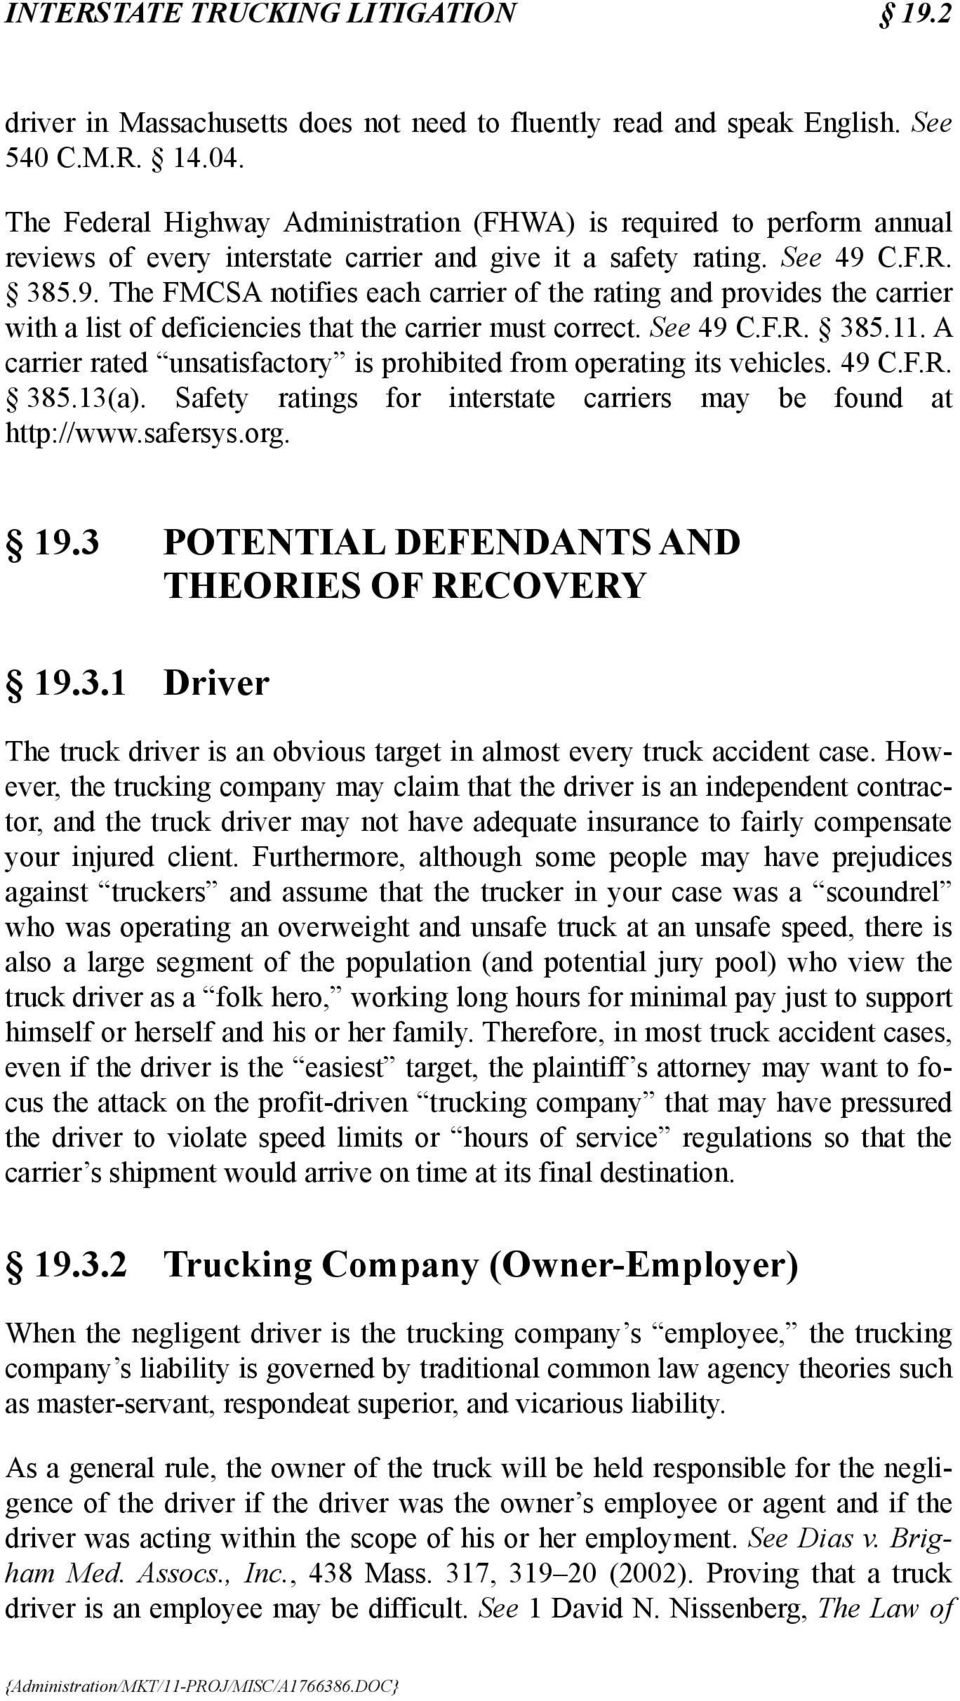 C.F.R. 385.9. The FMCSA notifies each carrier of the rating and provides the carrier with a list of deficiencies that the carrier must correct. See 49 C.F.R. 385.11.